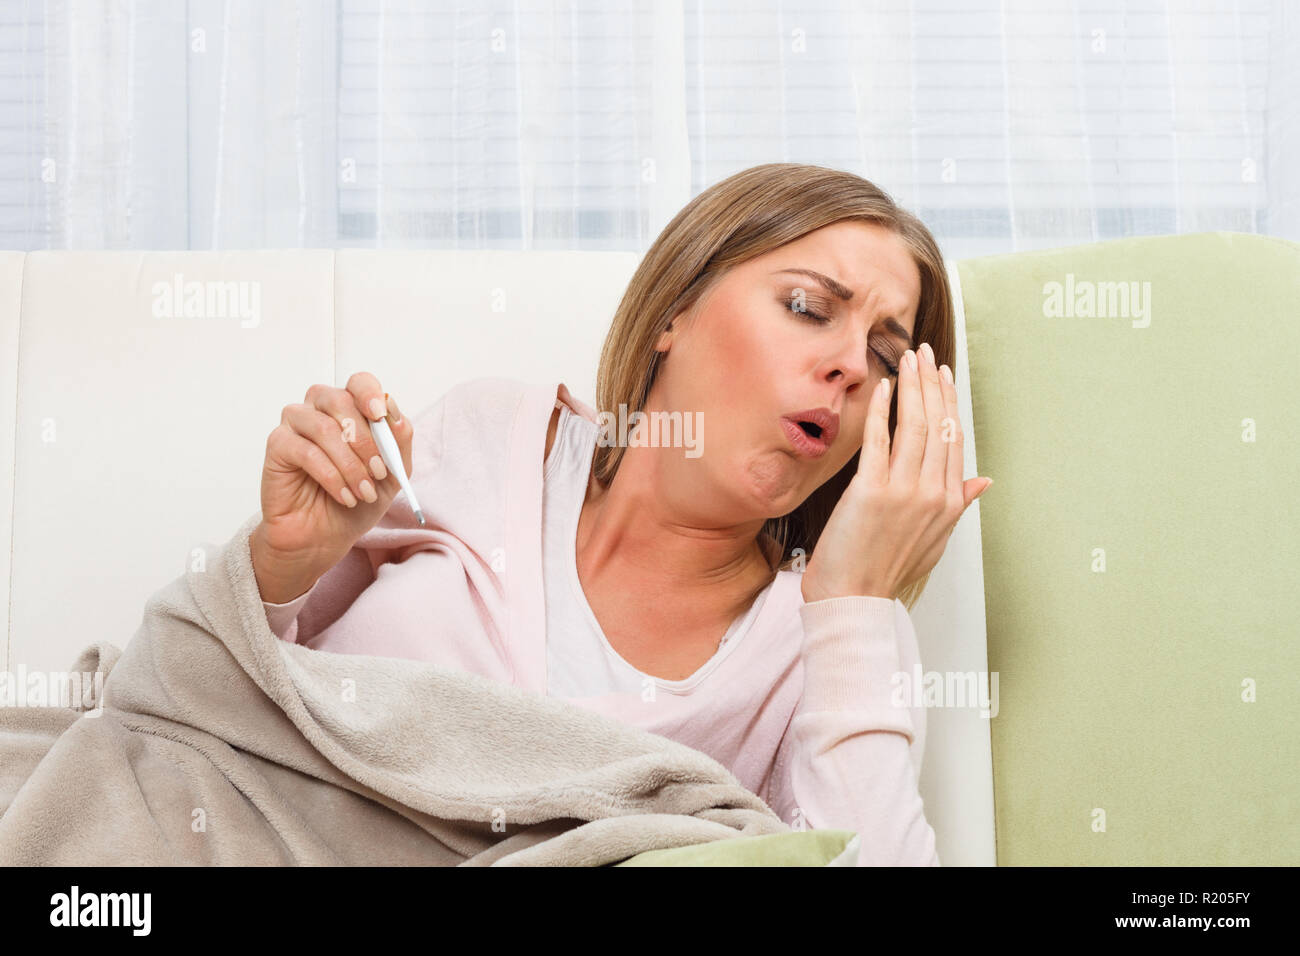 Woman coughing - Stock Image